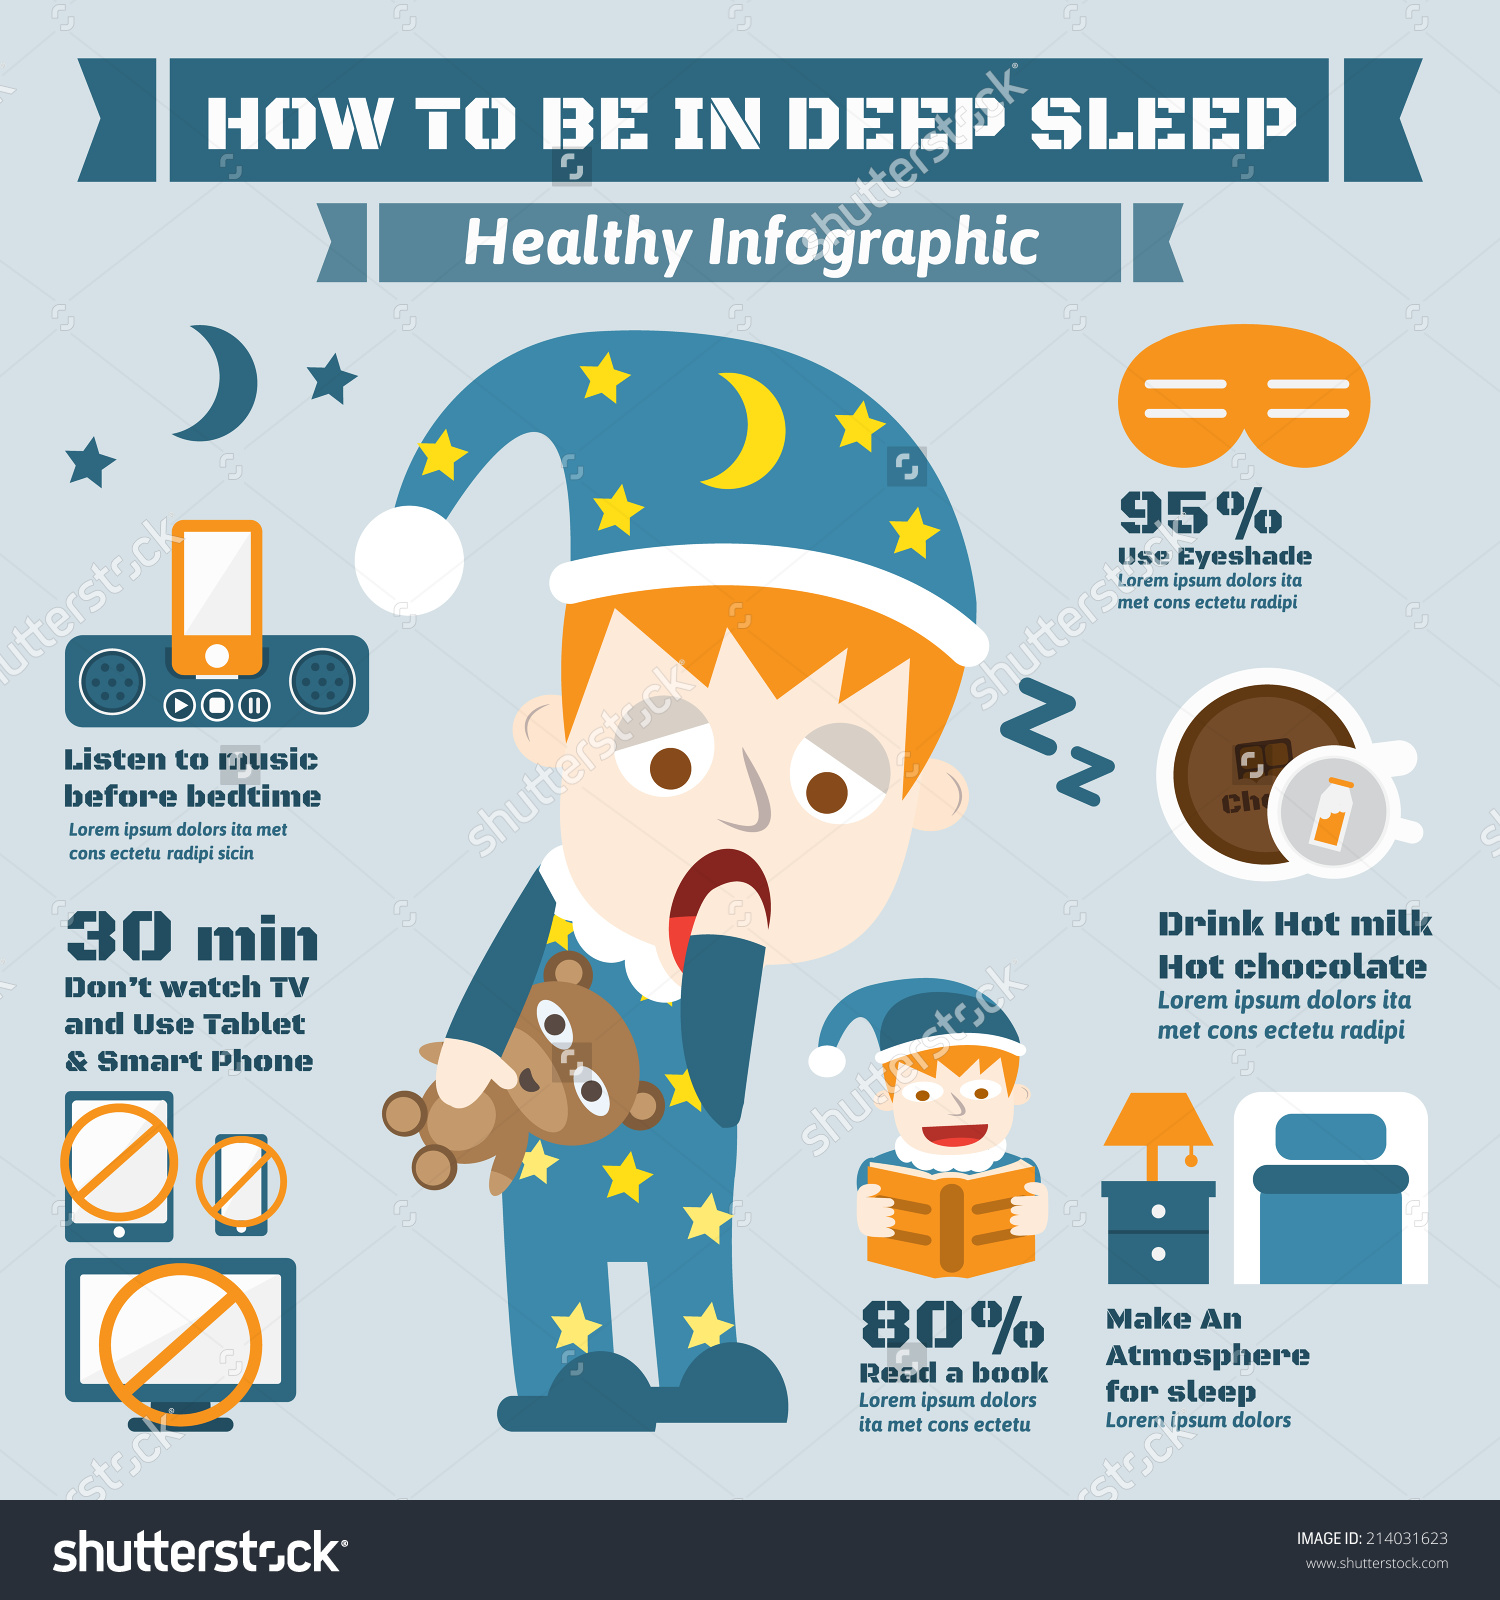 Deep sleep clipart 20 free Cliparts | Download images on ...